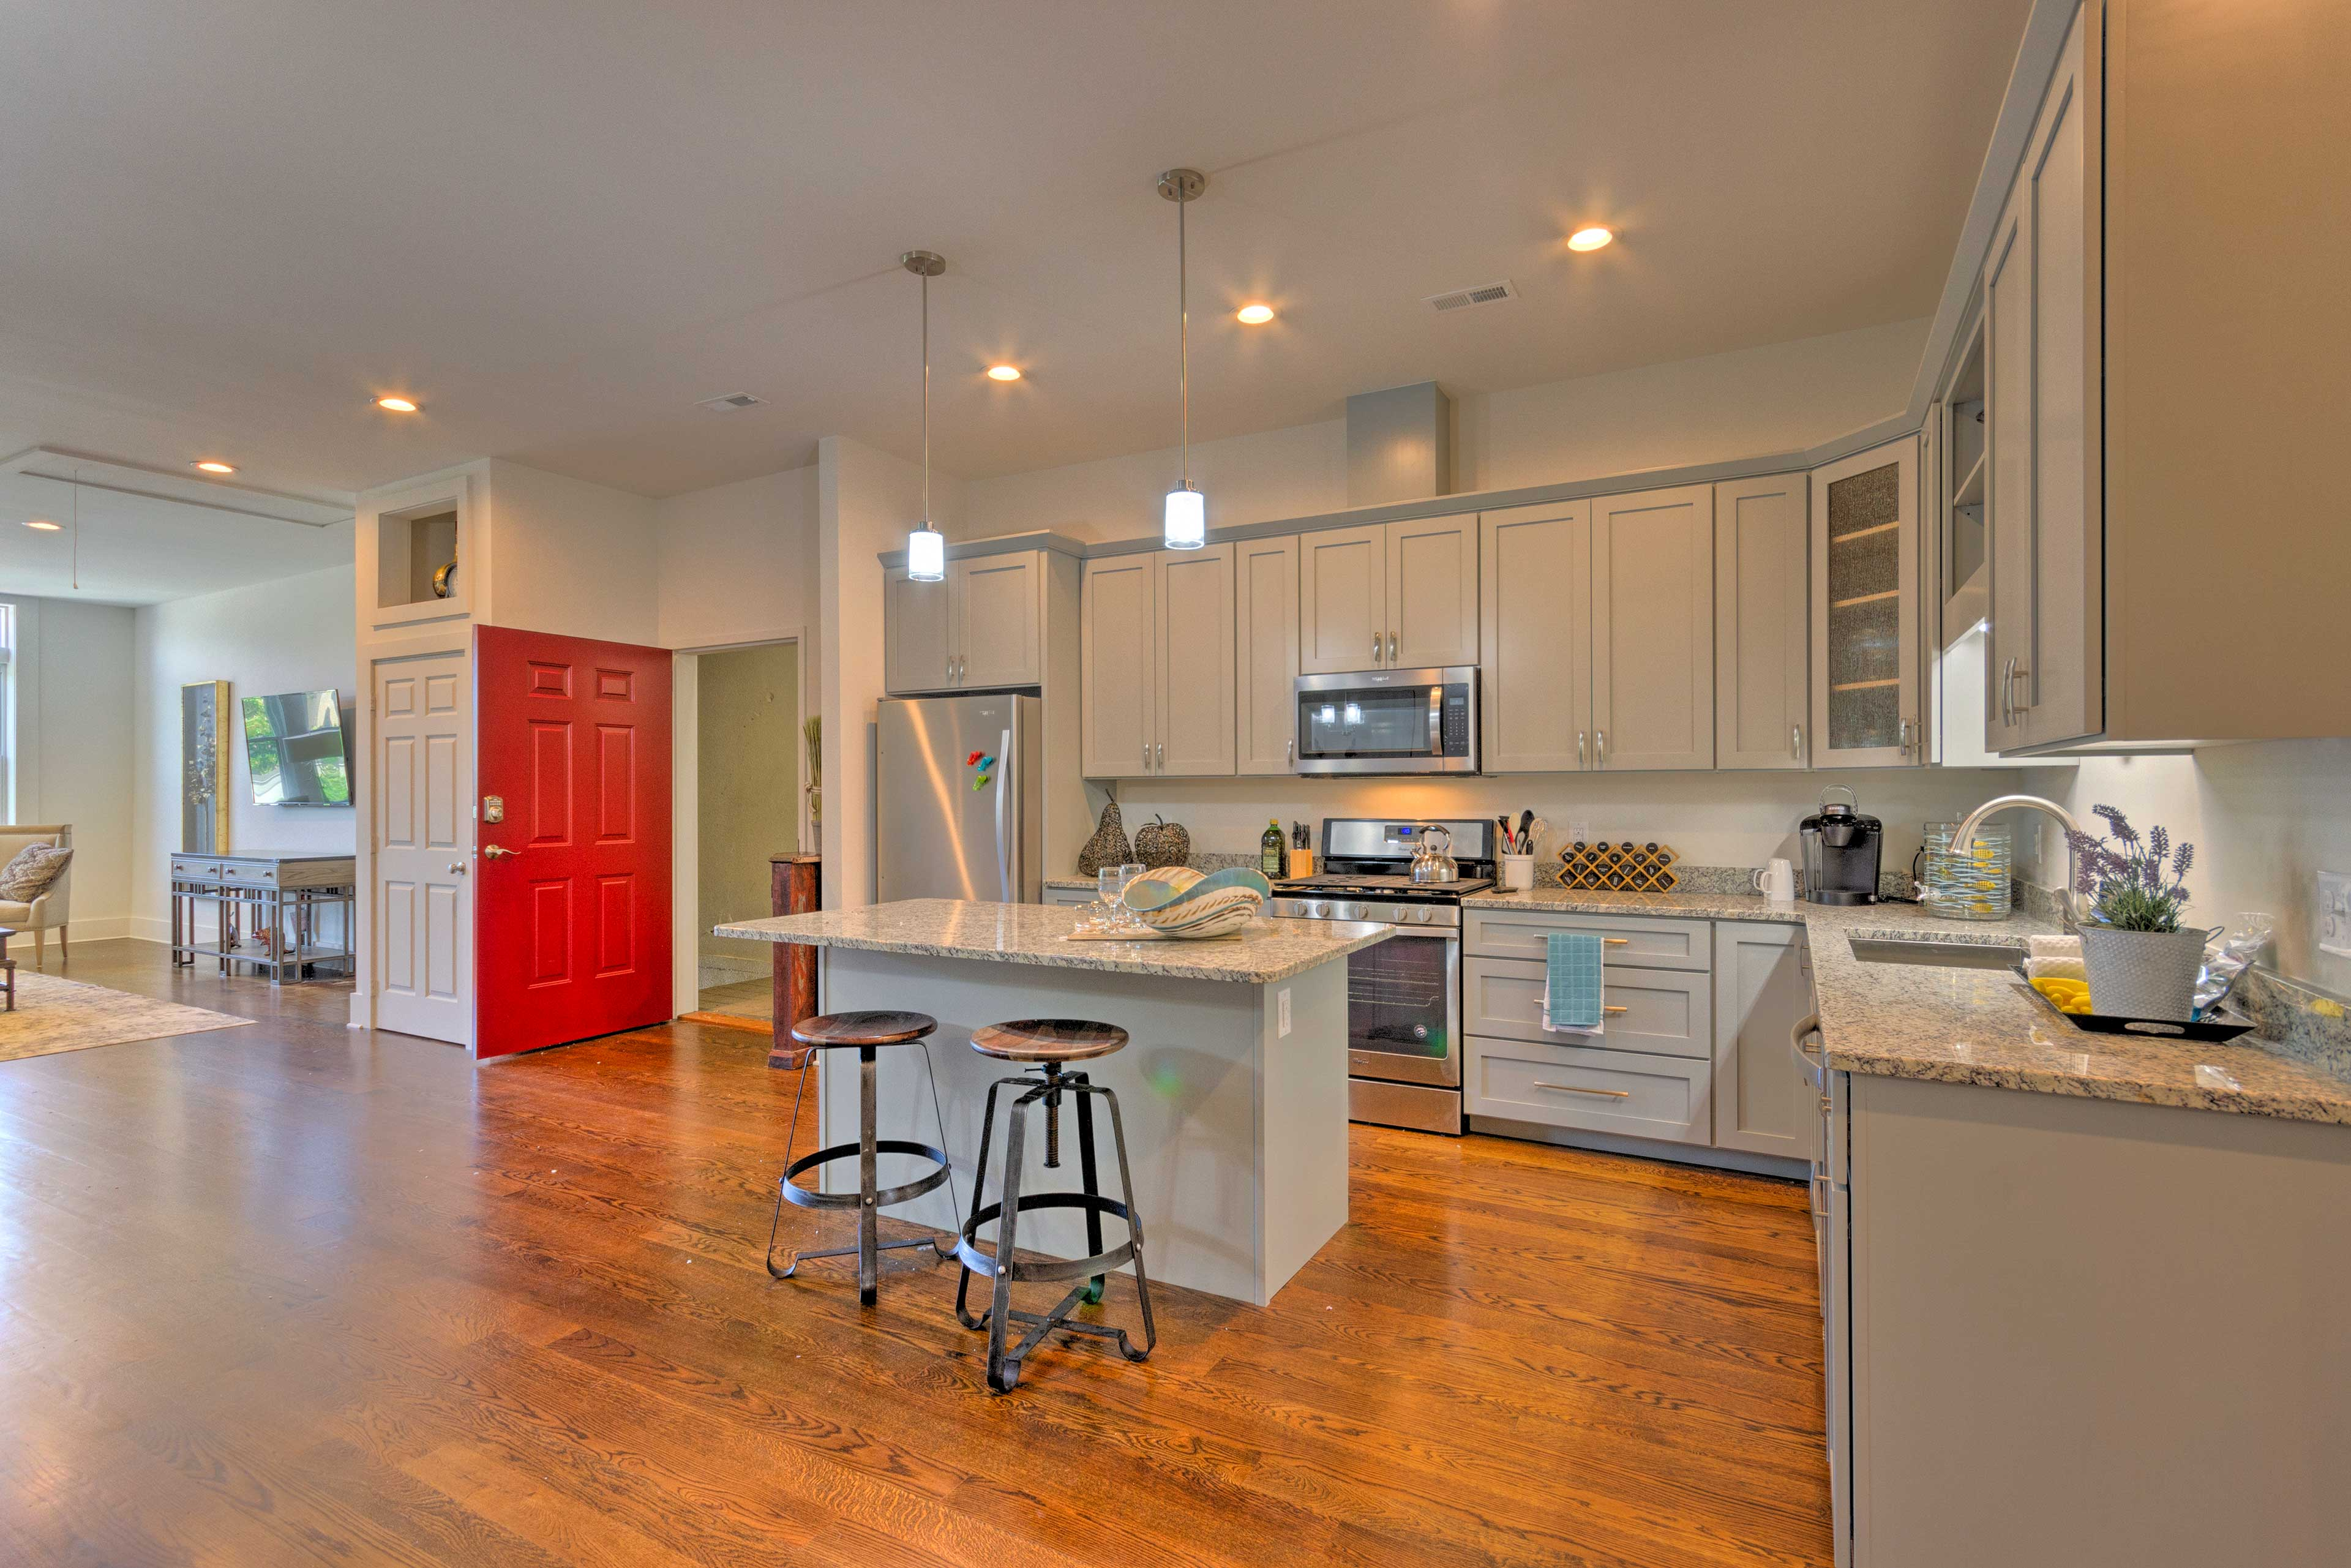 The kitchen is fully equipped with cooking basics & appliances.